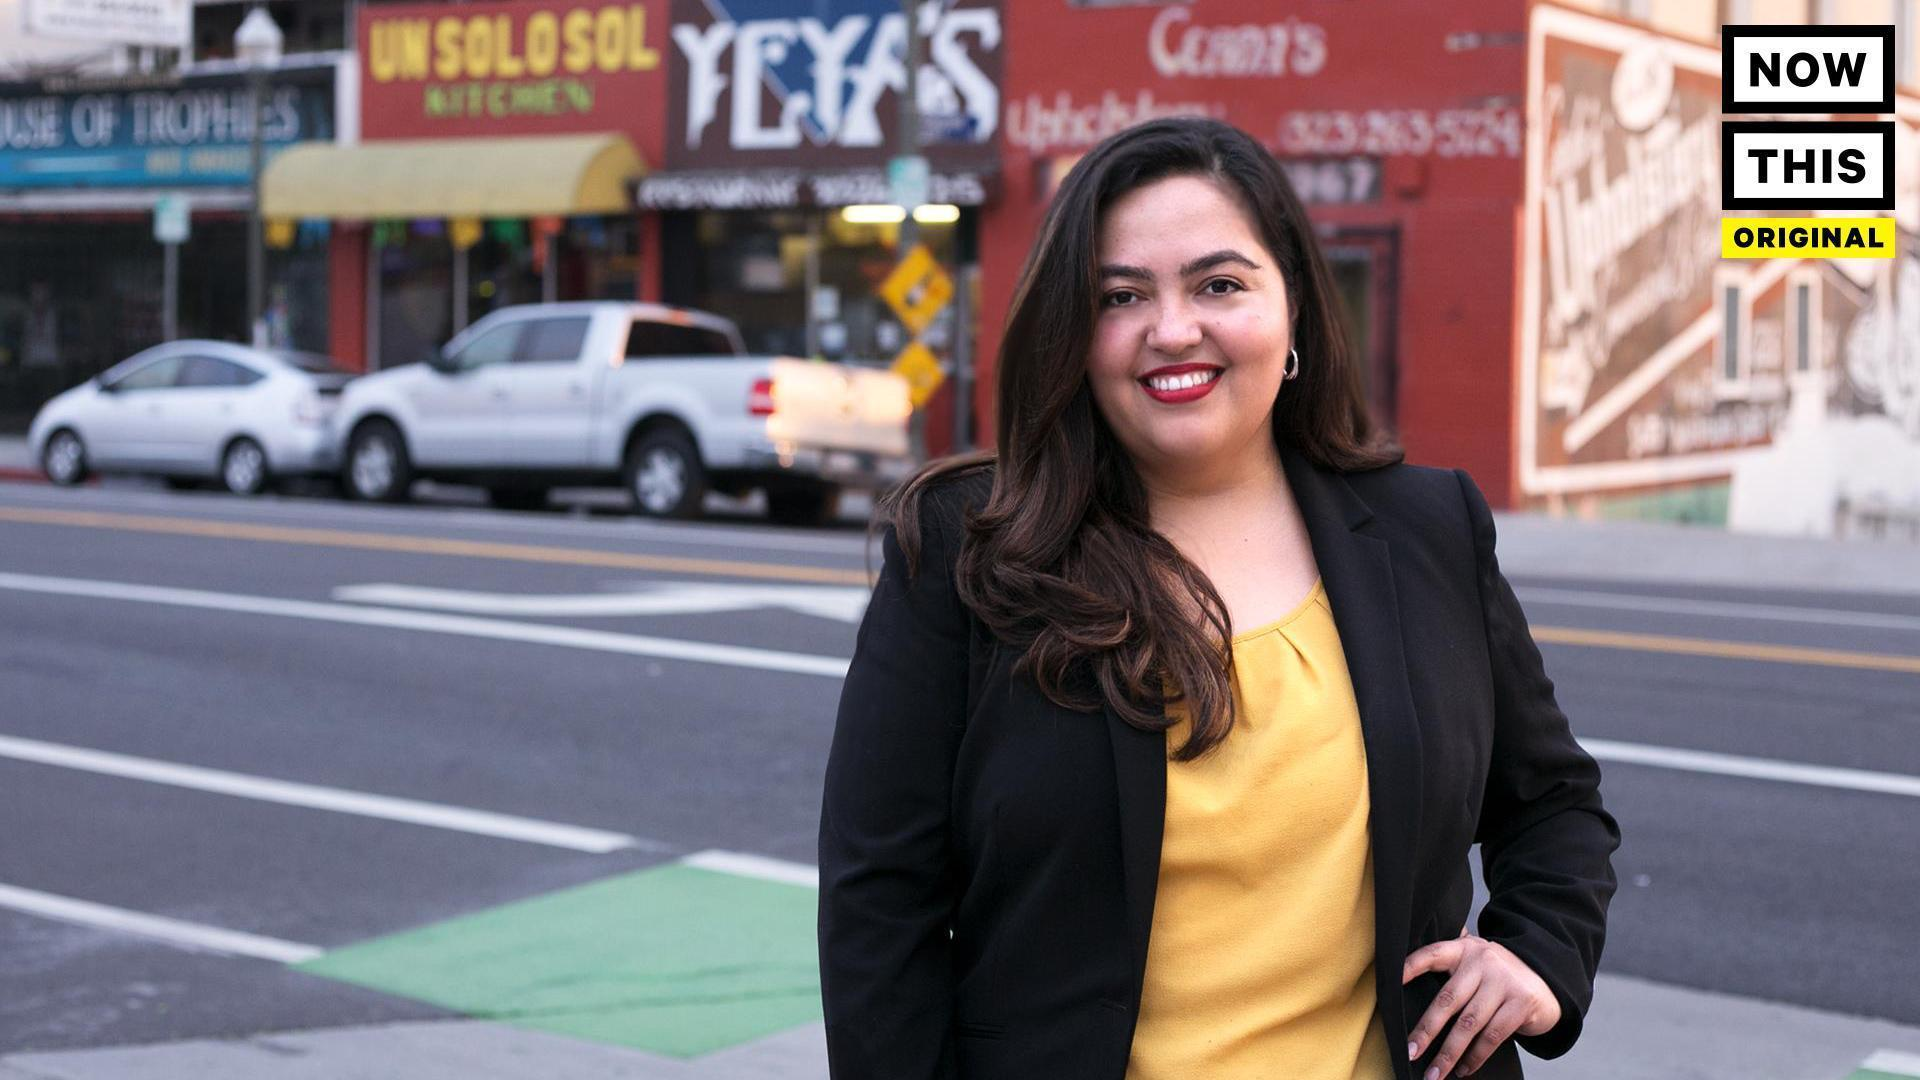 Wendy Carrillo Was An Undocumented Immigrant, Now She's Running For Congress